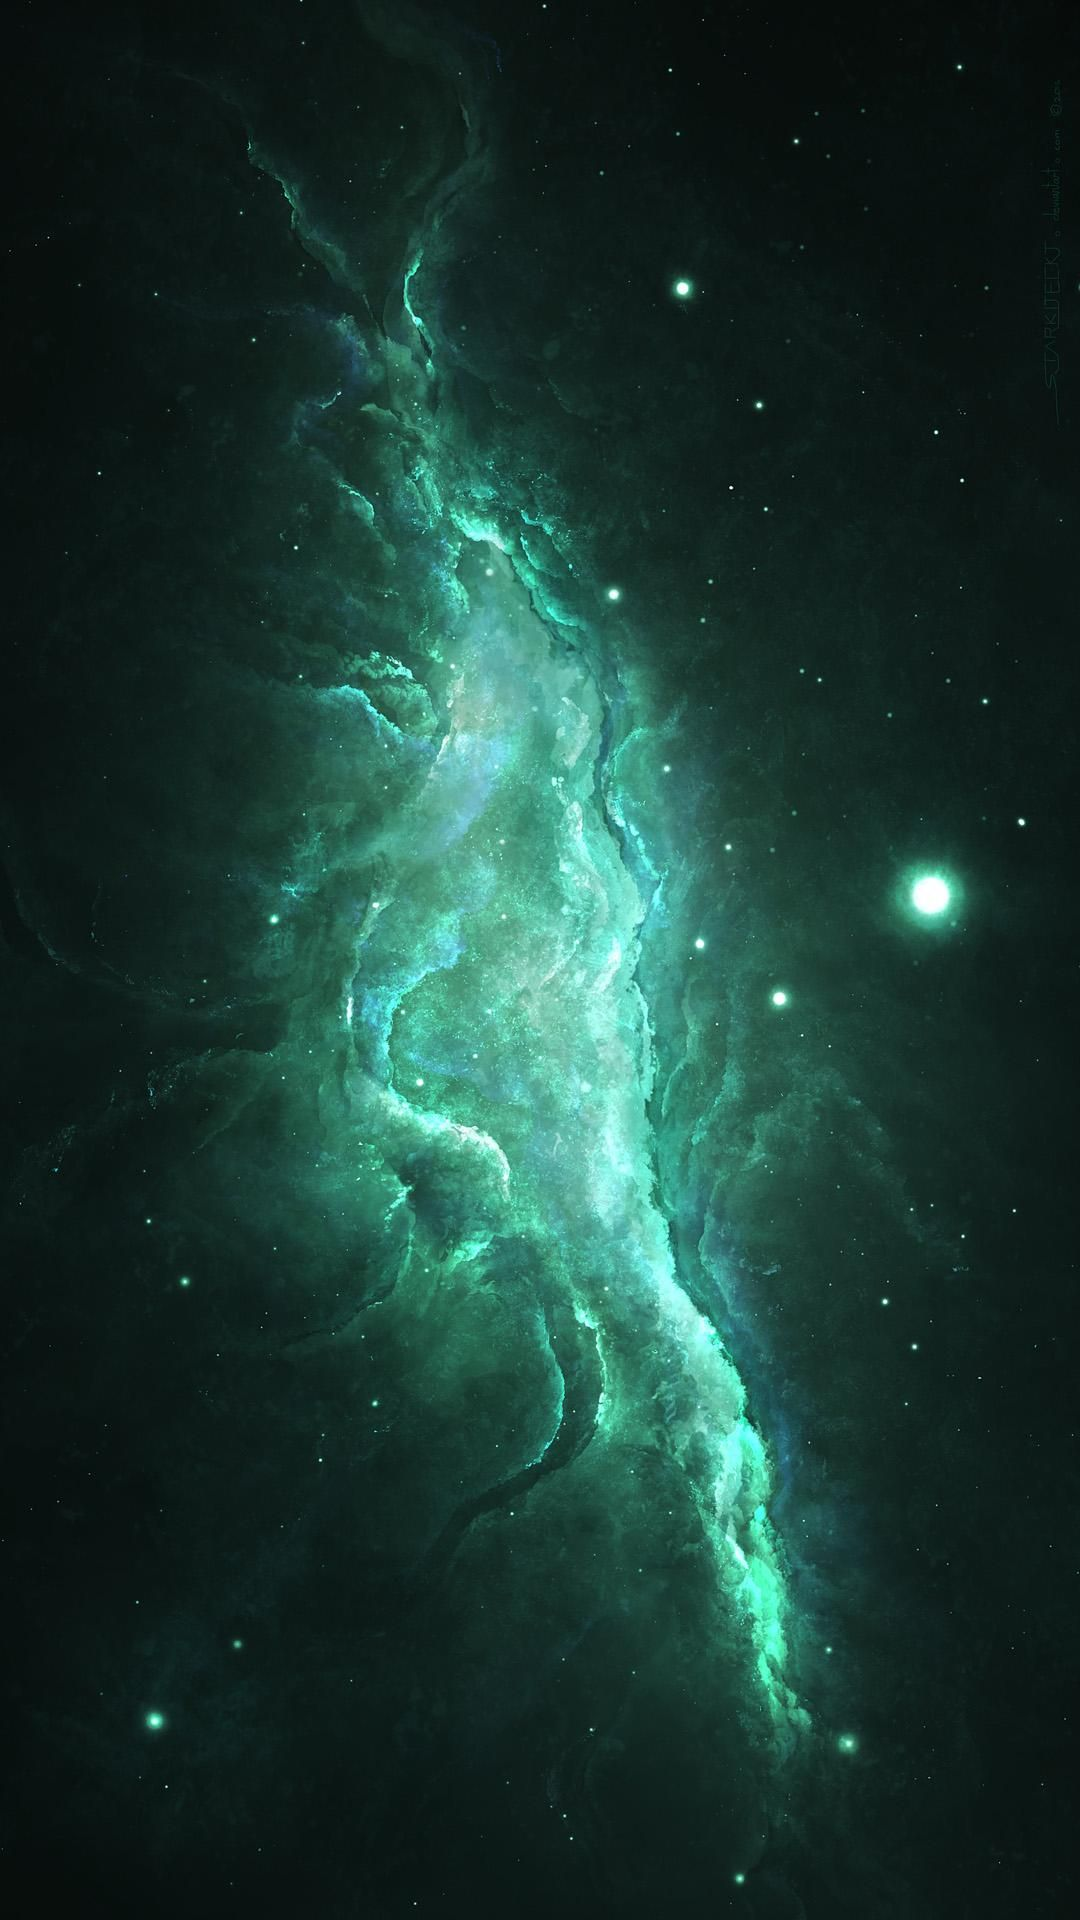 Space Void Download At - Space Void Wallpaper Phone , HD Wallpaper & Backgrounds